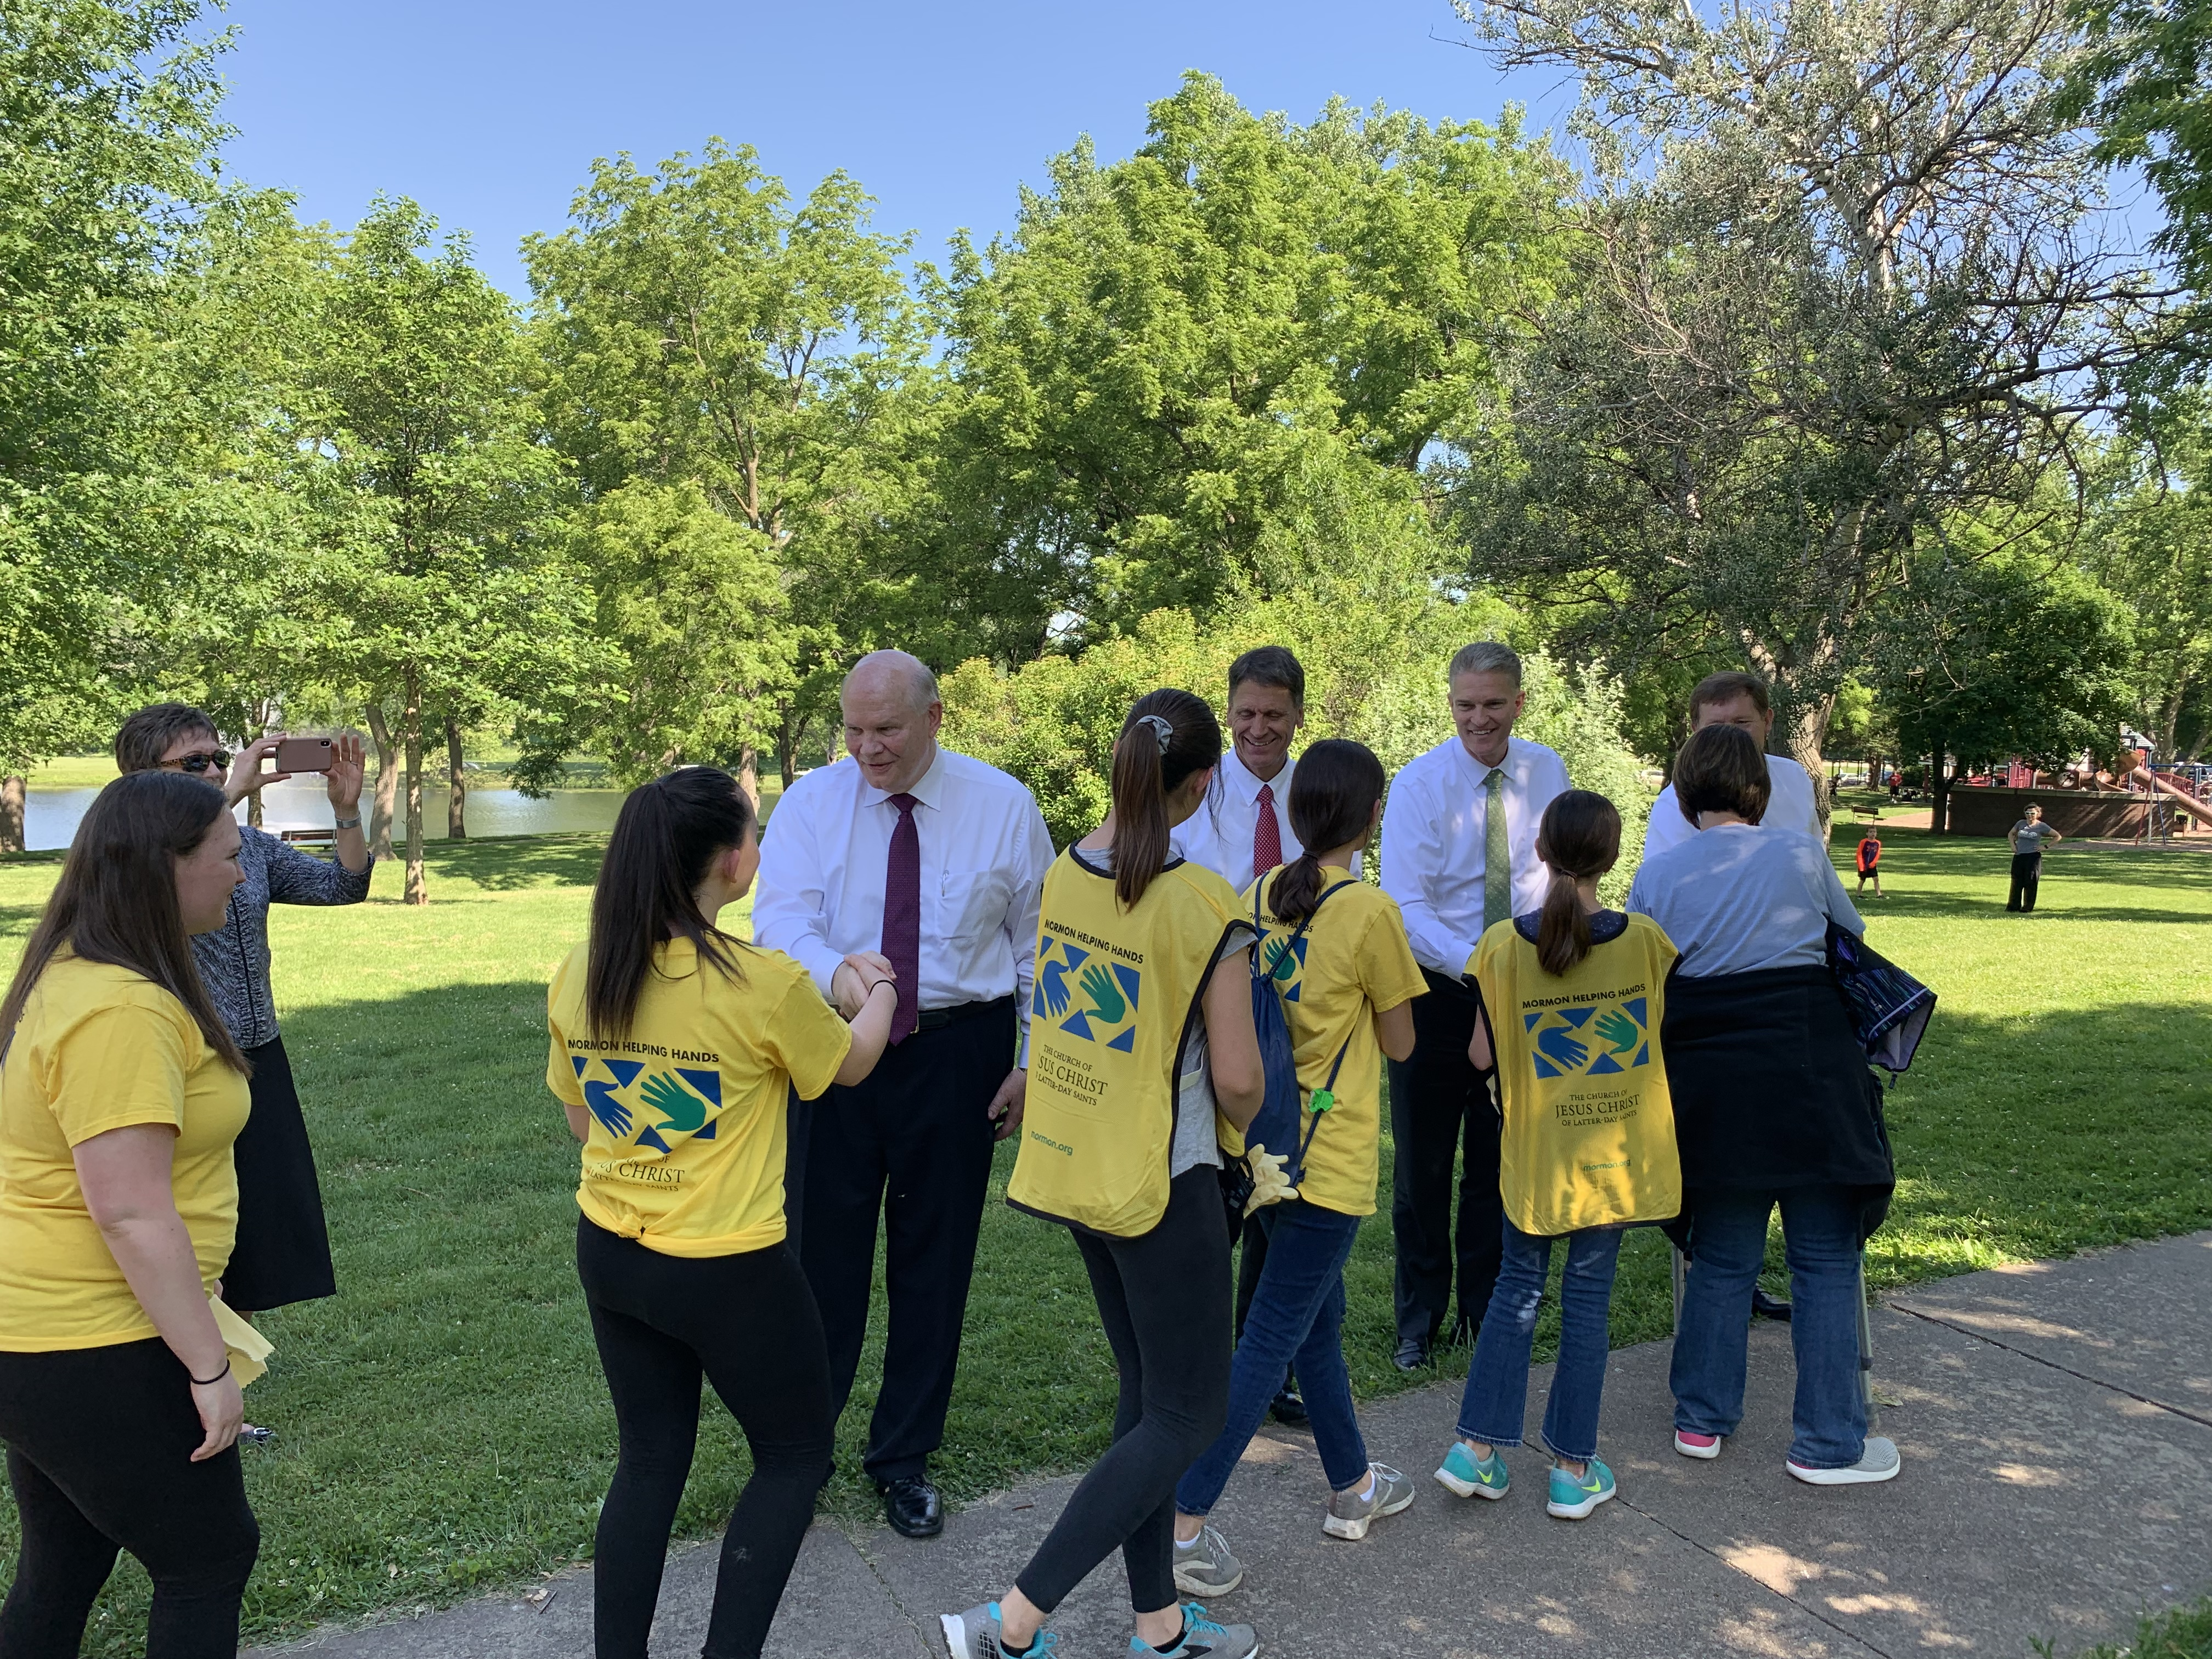 Elder Dale G. Renlund greets youth and leaders who came to serve the Iowa flood victims on June 10, 2019.